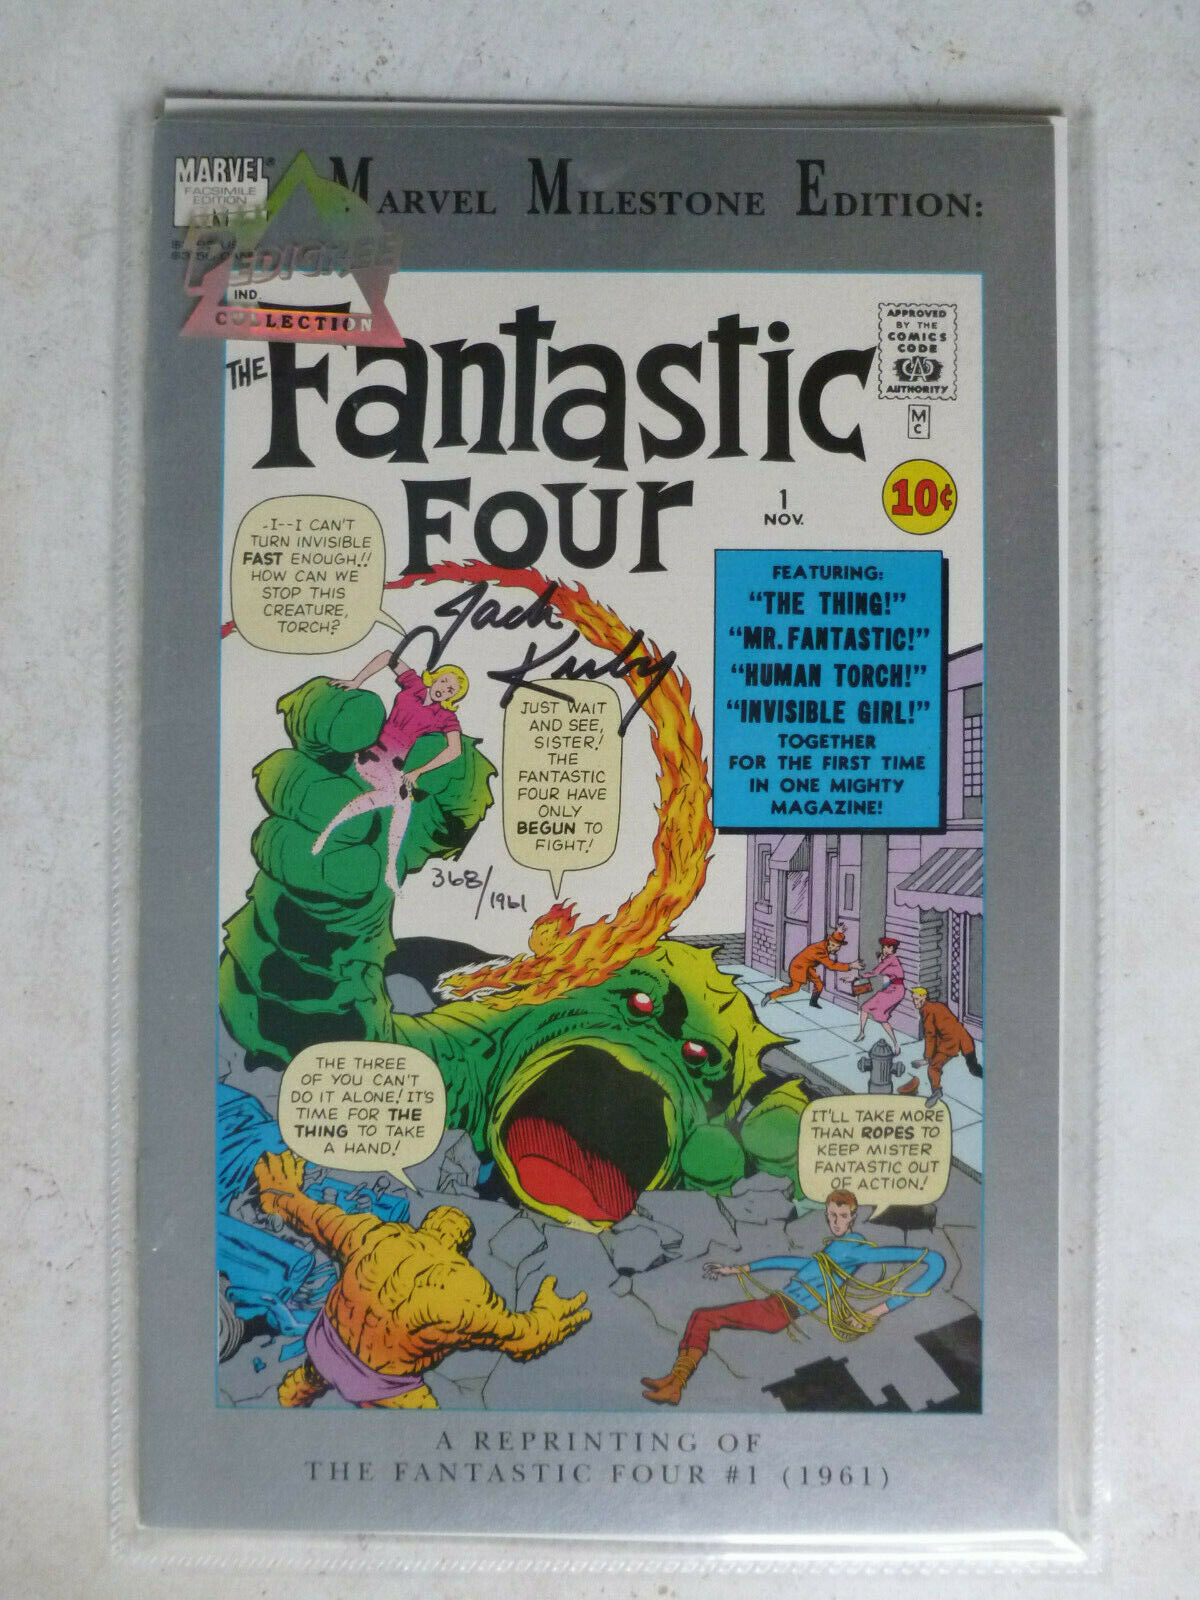 MARVEL MILESTONE EDITION Signed Comic by Jack Kirby w/COA  Fantastic Four #1